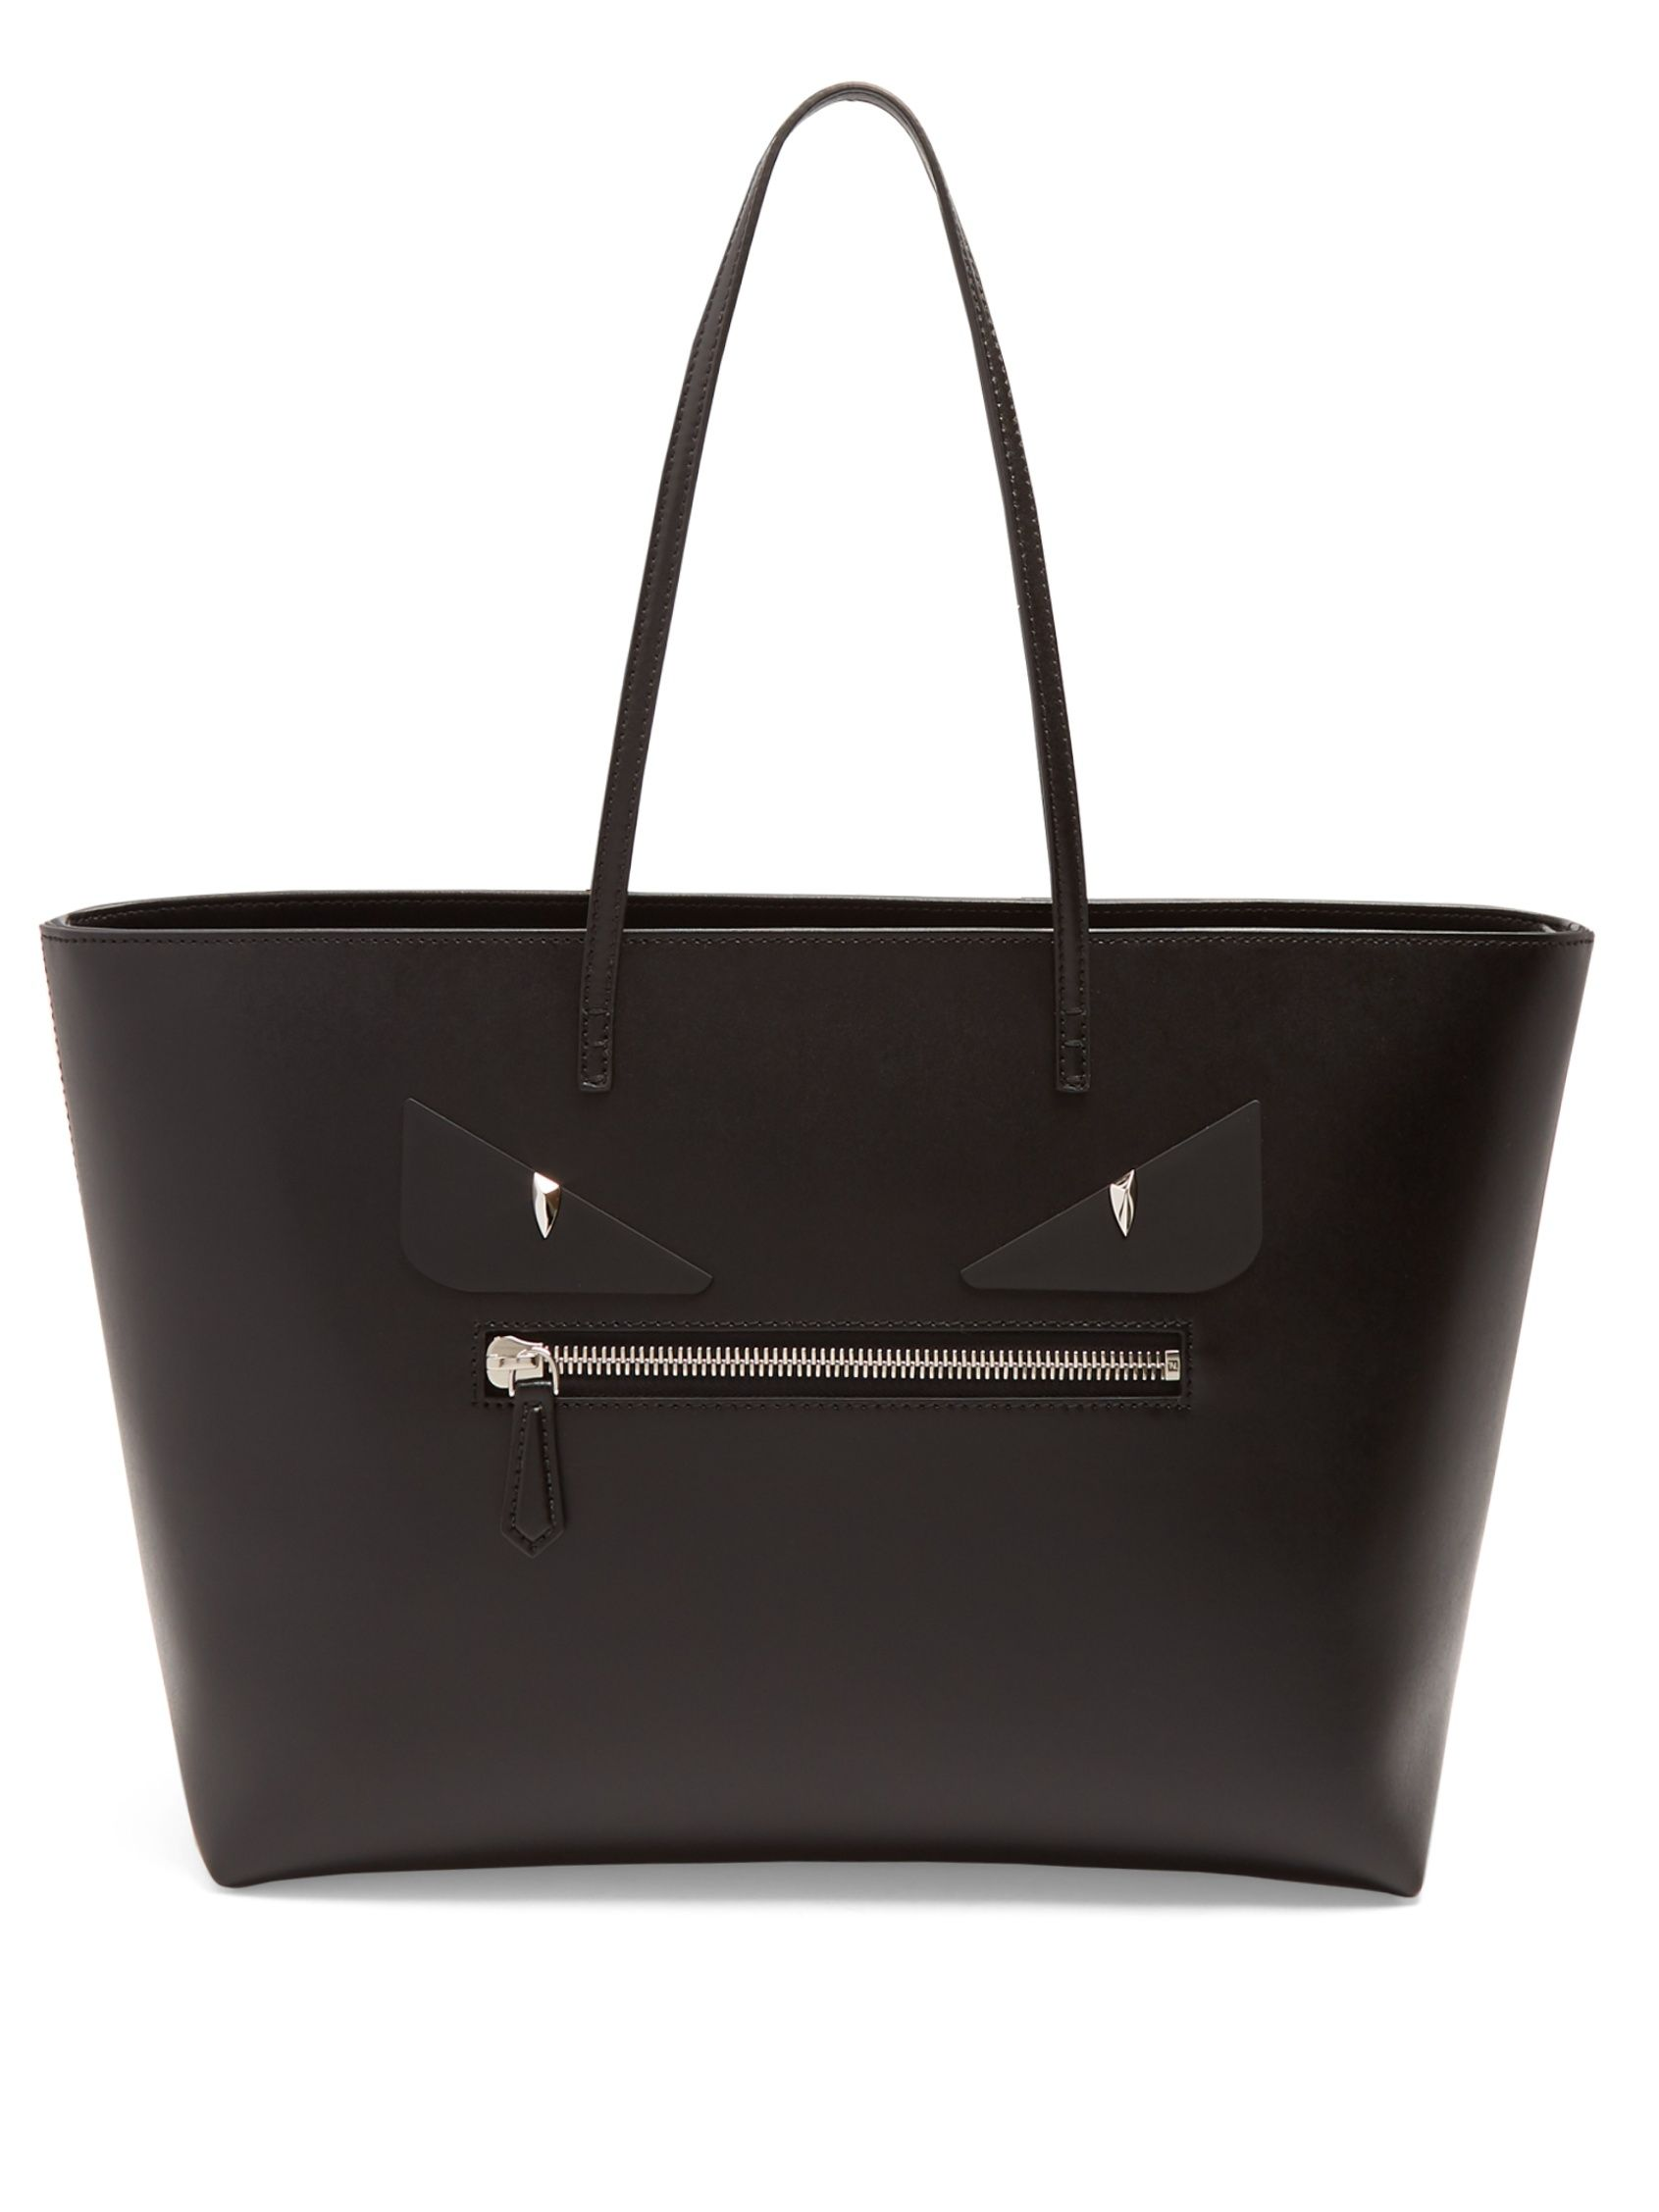 Roll Bag Bugs leather tote  c640e6d0dc0d1